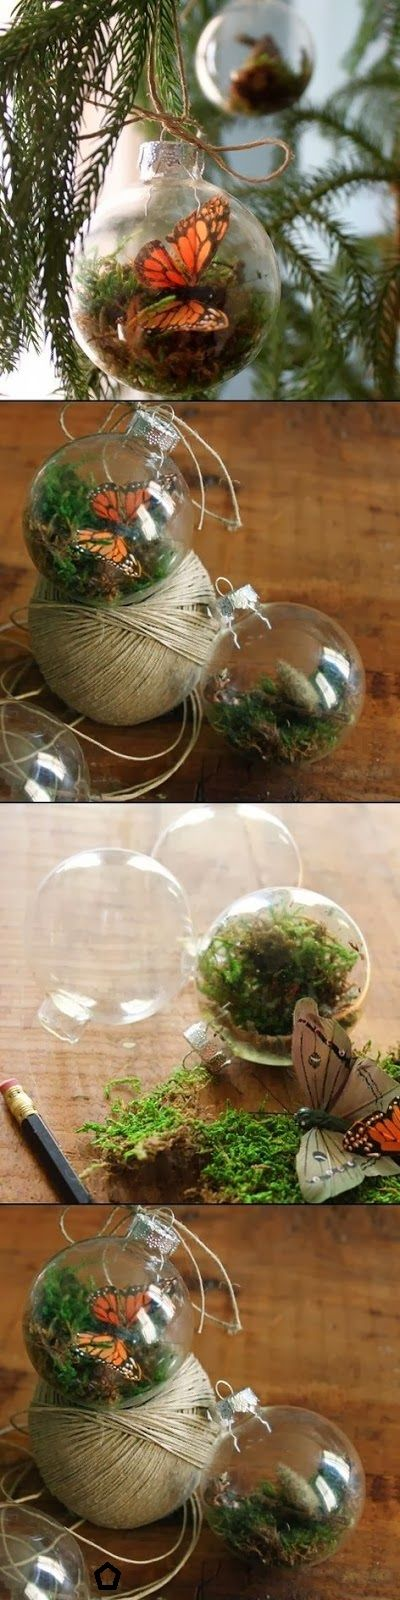 DIY TERRARIUM ORNAMENTS ideas